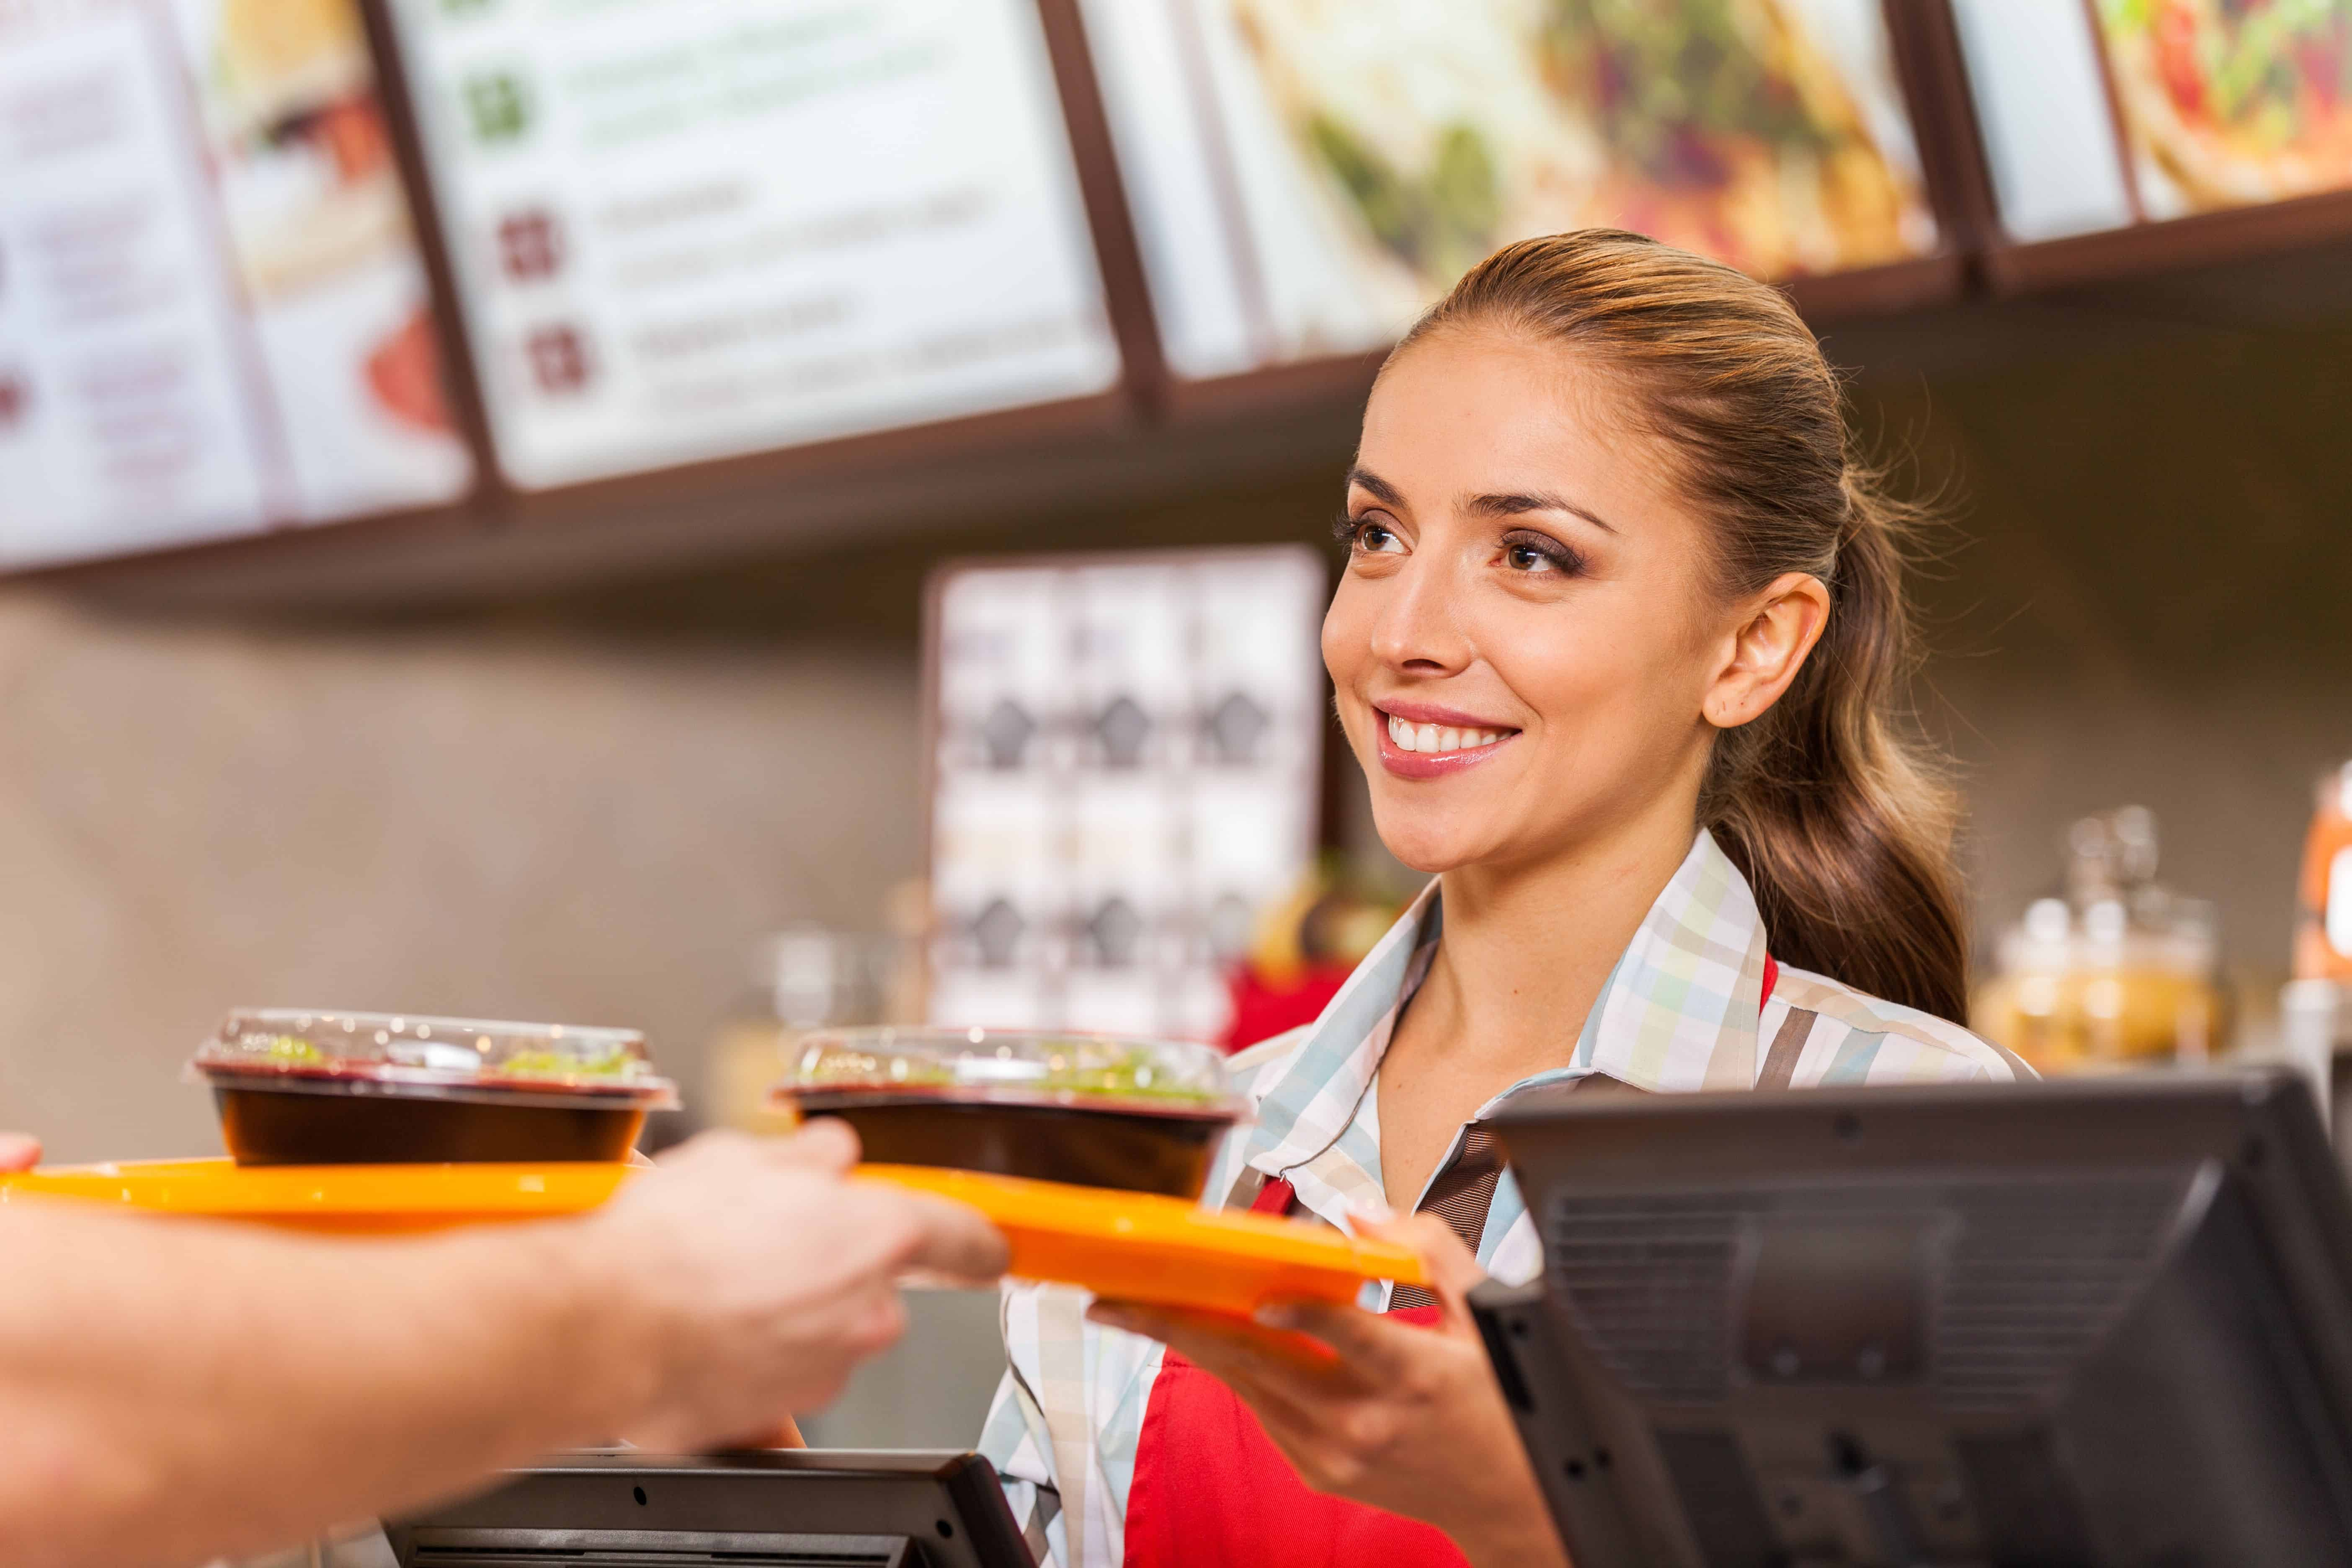 Quick Serve Restaurants StrasGlobal Retail Management Services